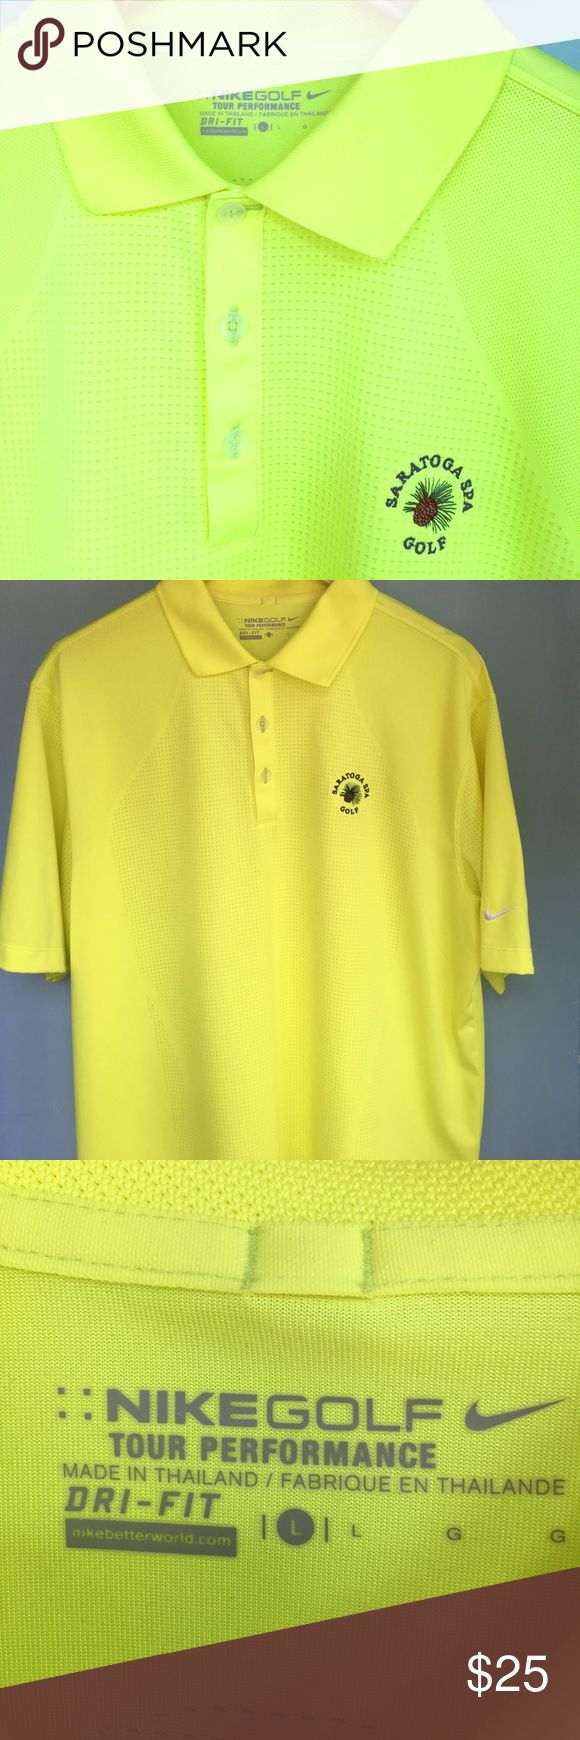 Nike polo shirt Super bright , super light Nike Golf shirt . Saratoga Spa Golf  logo embroidery . The horse racing / golf lover in your life would love this !!! NWOT . Nike Shirts Polos